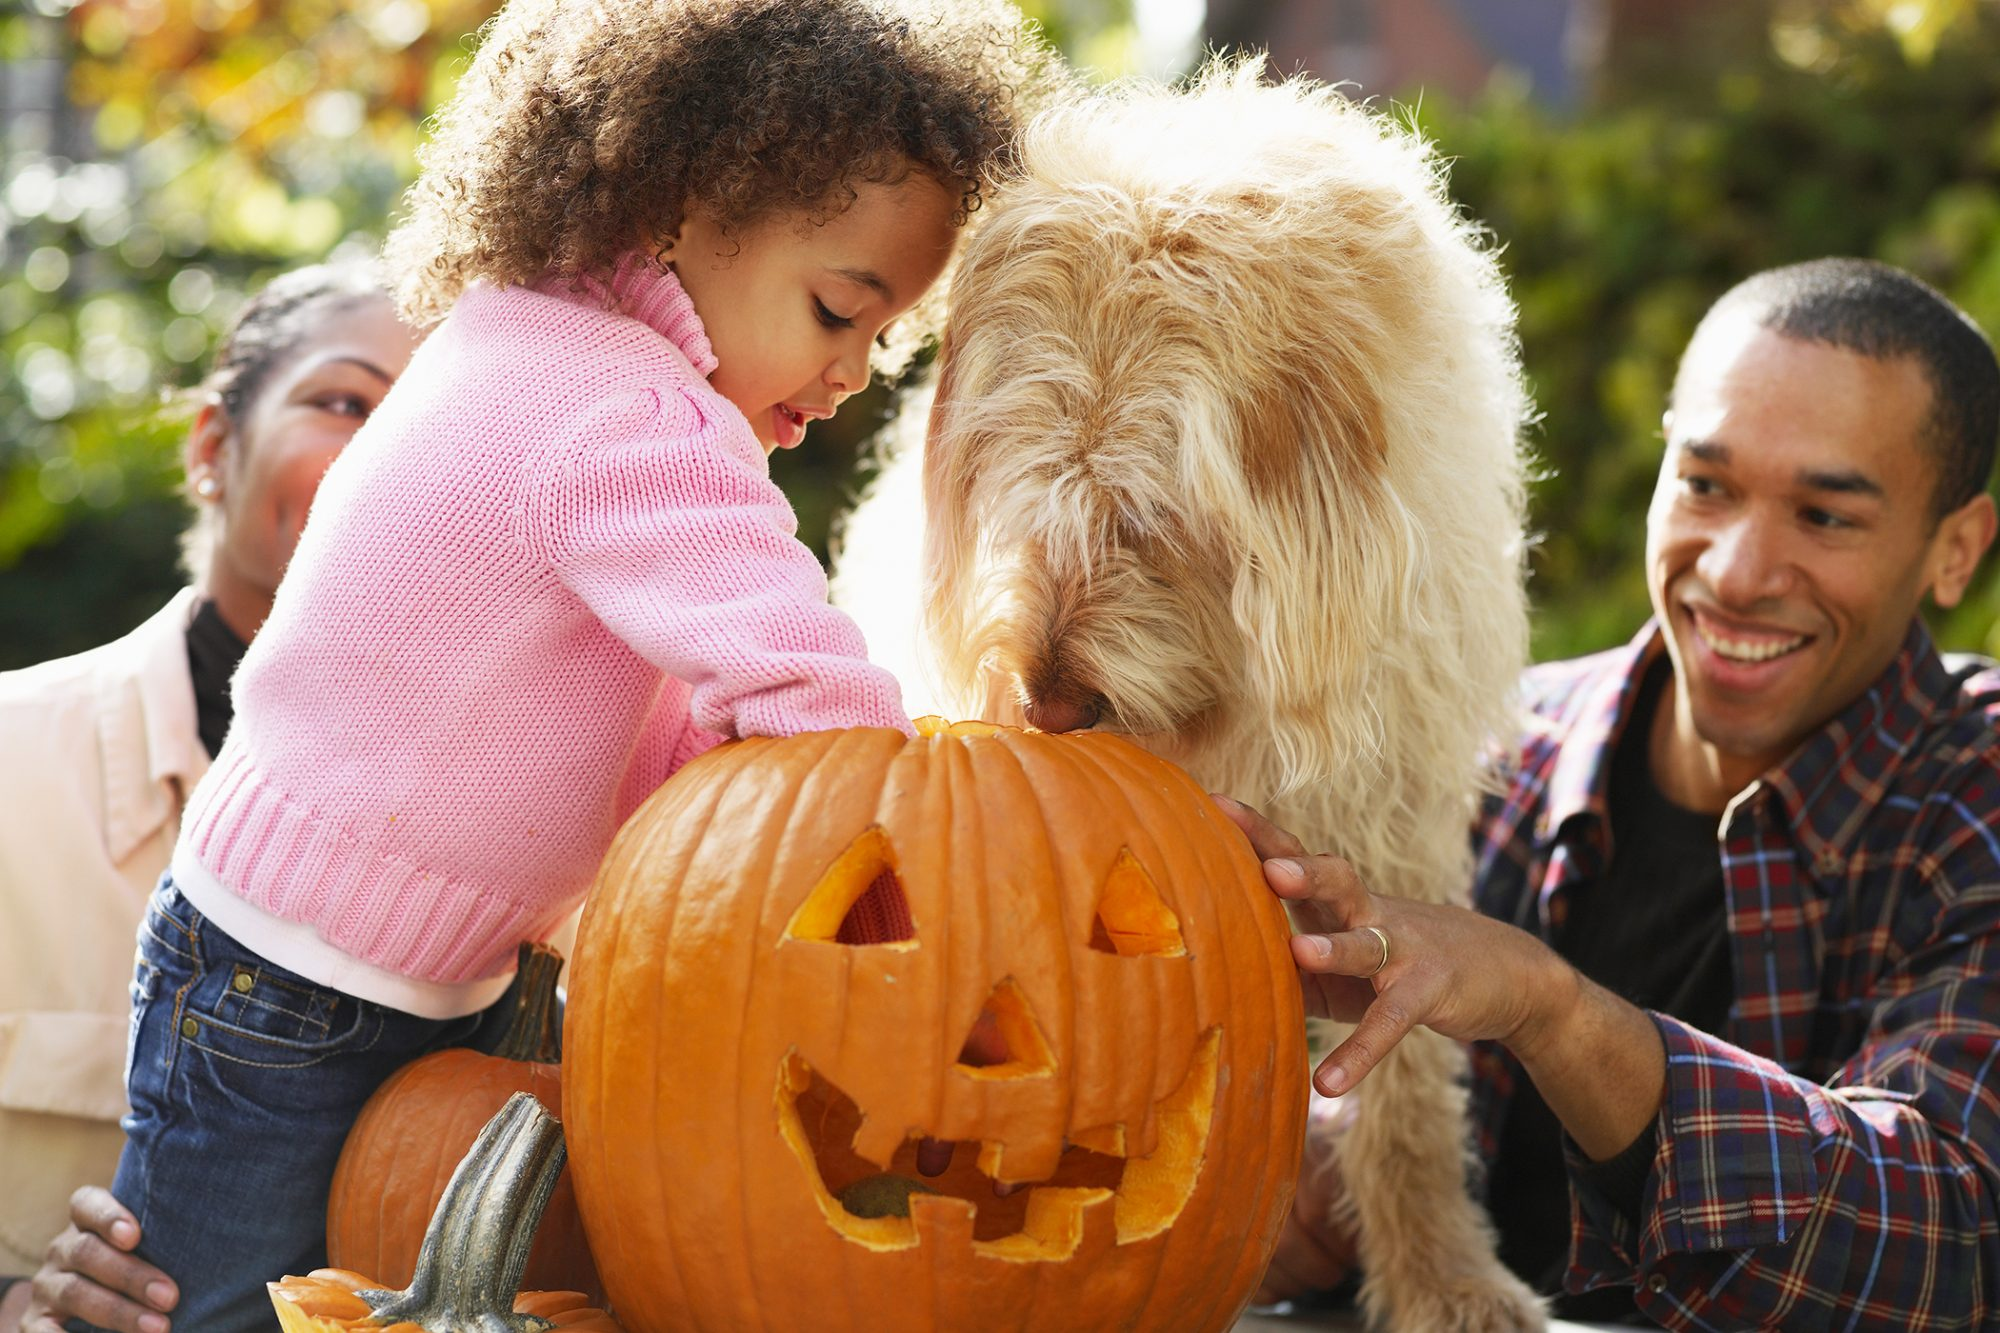 family carving a pumpkin on halloween with their dog